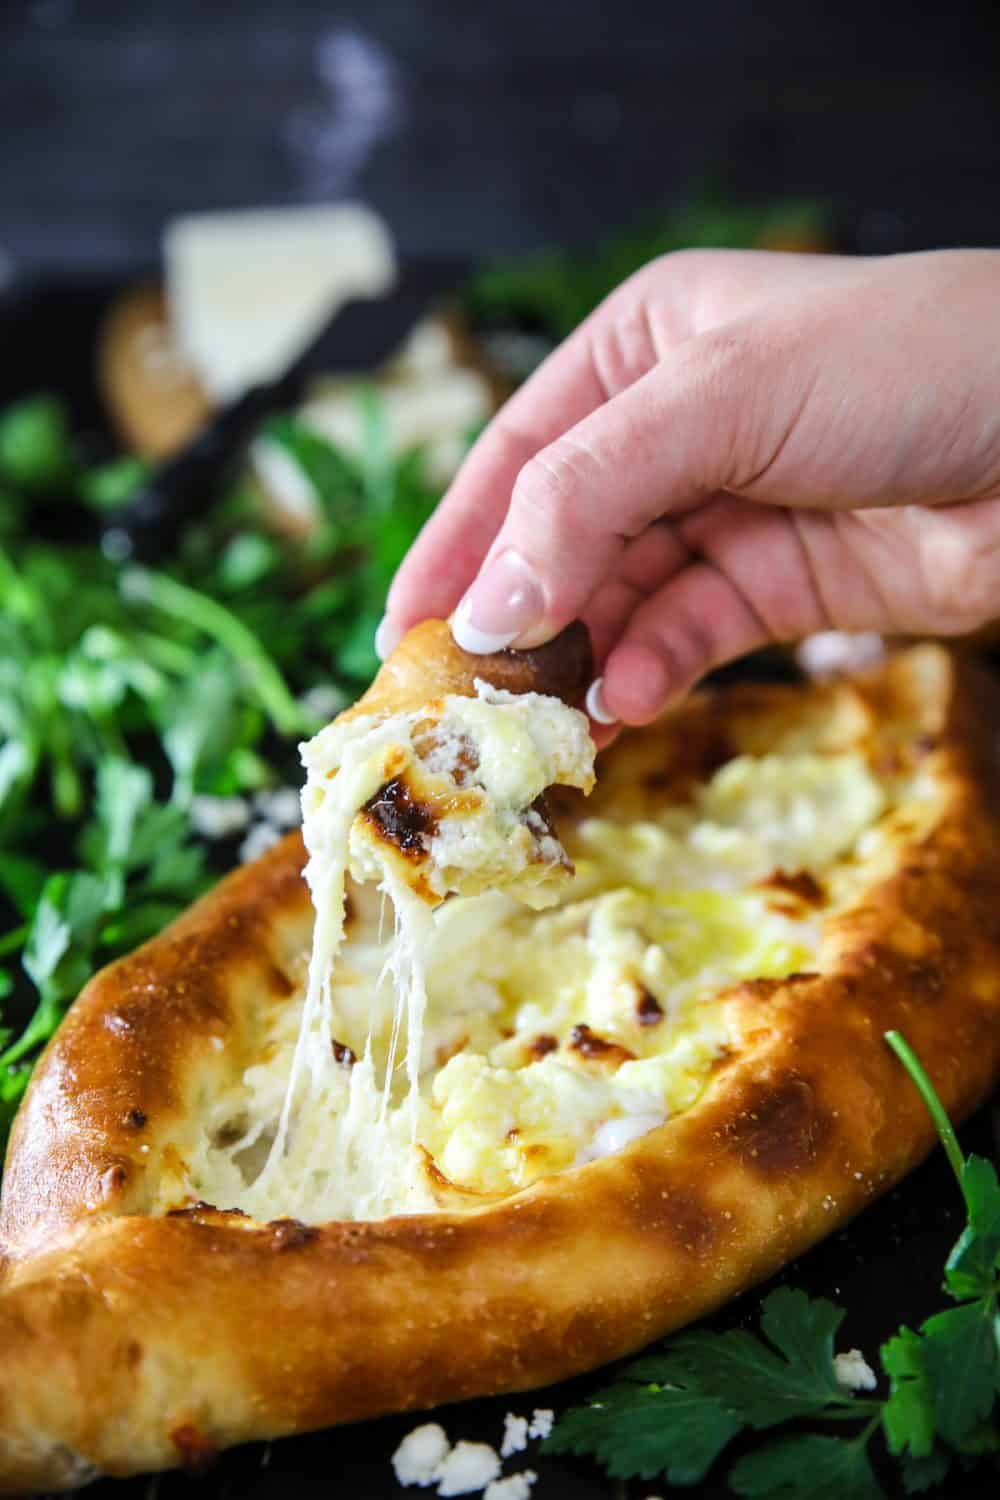 dipping bread into melted cheese from easy georgian khachapuri